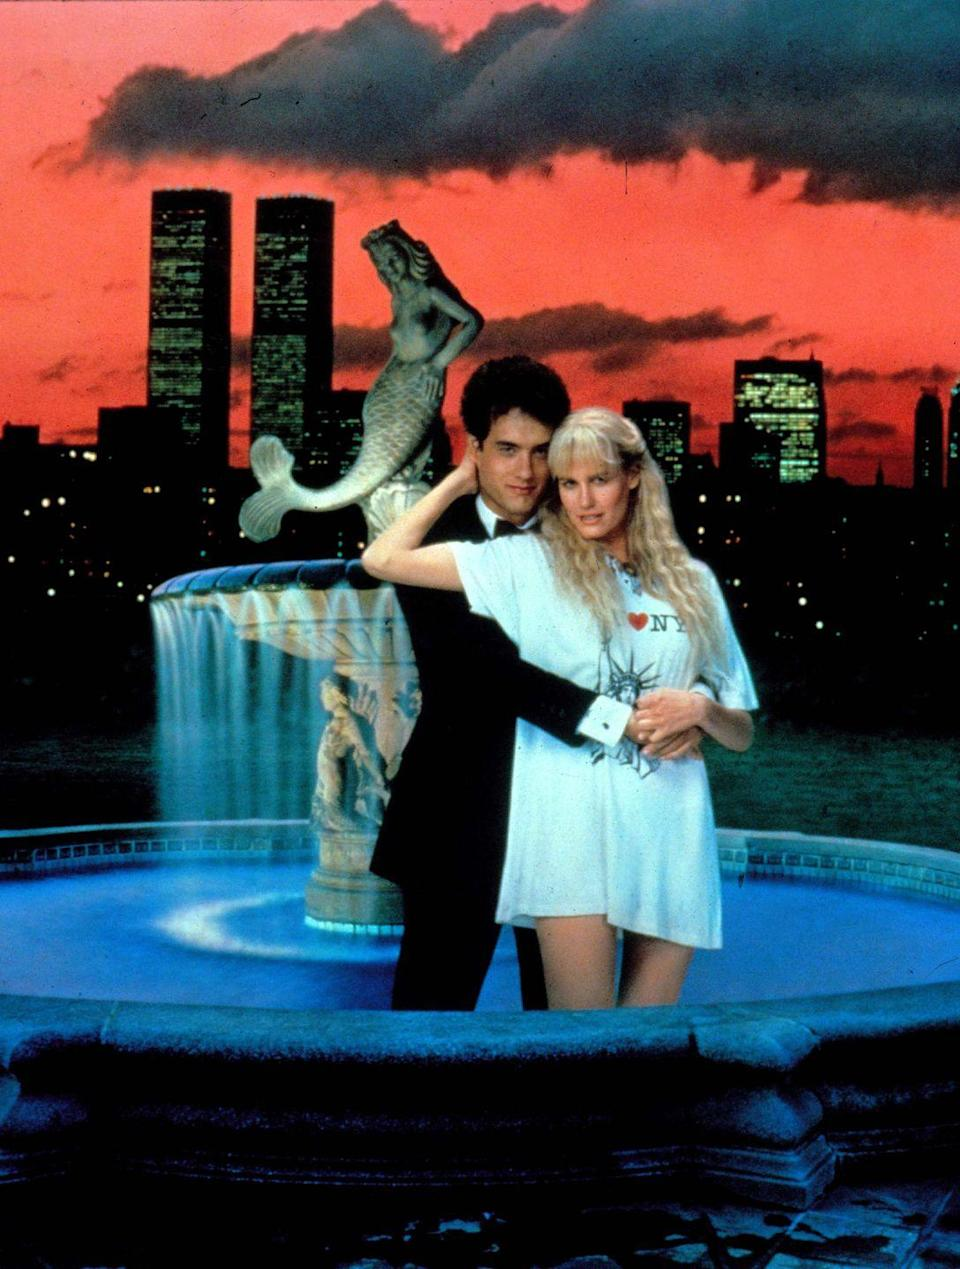 "<p>Tom Hanks and Daryl Hannah star in Ron Howard's fish-out-of-water story about a mermaid who reunites with the man she saved when he was a boy. Together on dry land, the two fall in love under the city lights of Manhattan, but are eventually are forced to make a decision: Choose love for the ocean or love for each other? The answer may surprise you. <a class=""link rapid-noclick-resp"" href=""https://www.amazon.com/Splash-Tom-Hanks/dp/B00D4LKOVC?tag=syn-yahoo-20&ascsubtag=%5Bartid%7C10056.g.6498%5Bsrc%7Cyahoo-us"" rel=""nofollow noopener"" target=""_blank"" data-ylk=""slk:Watch Now"">Watch Now</a></p>"